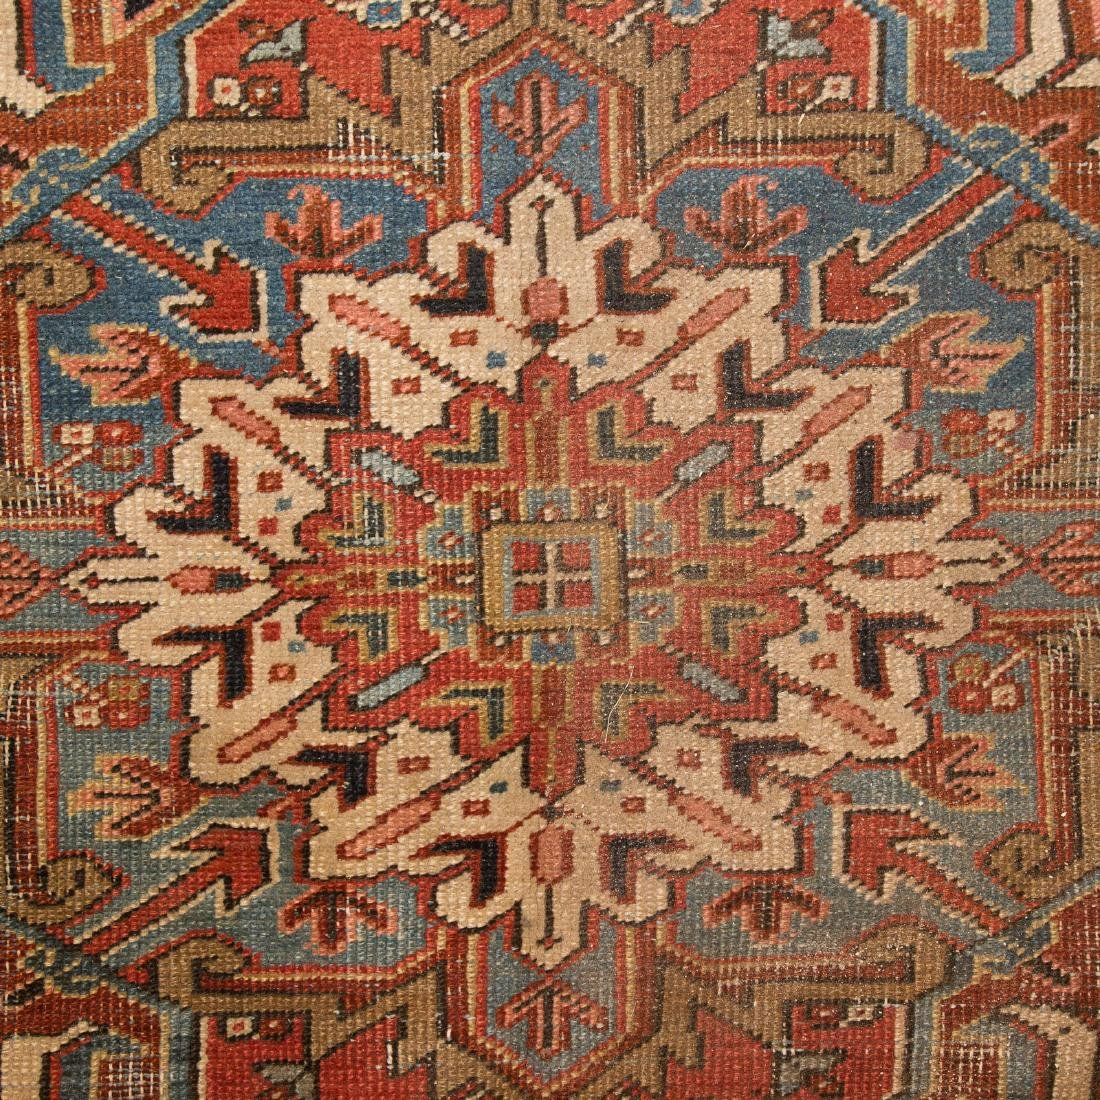 Persian Herez carpet, approx. 8.6 x 12.3 - 5